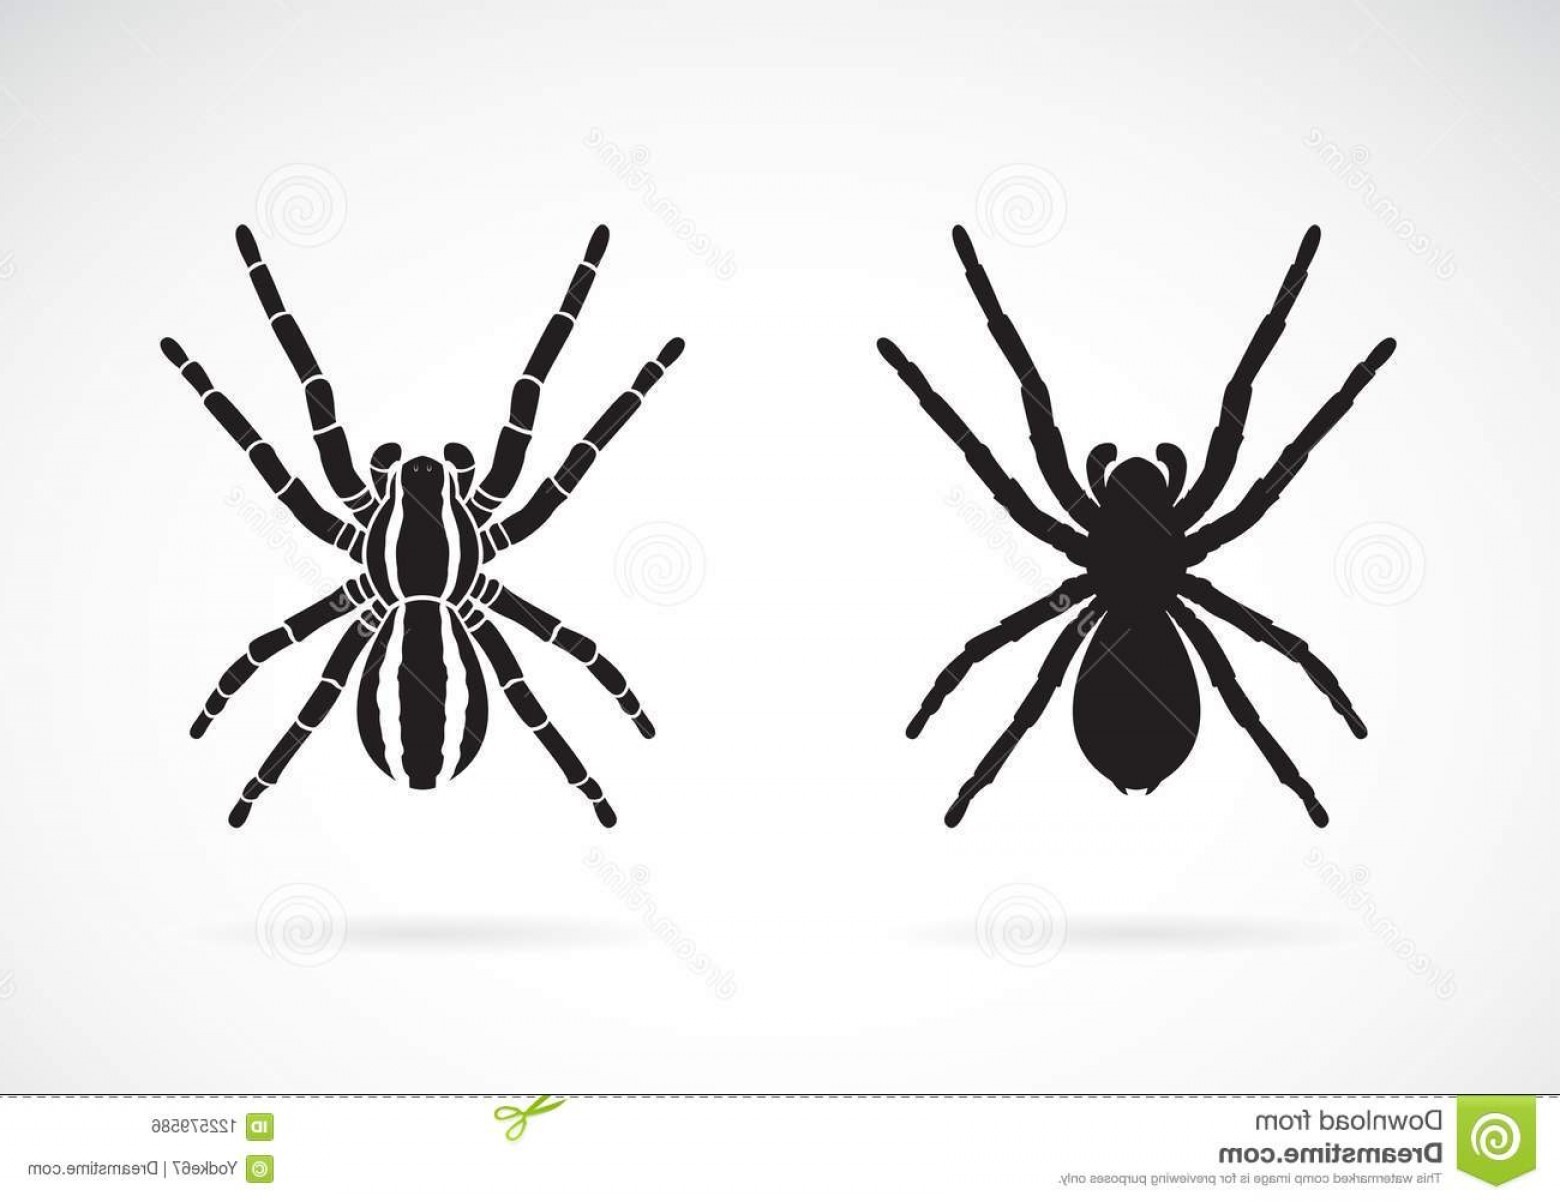 Easy Spider Vector Illustration: Vector Spider White Background Insect Animal Easy Editable Layered Illustration Image